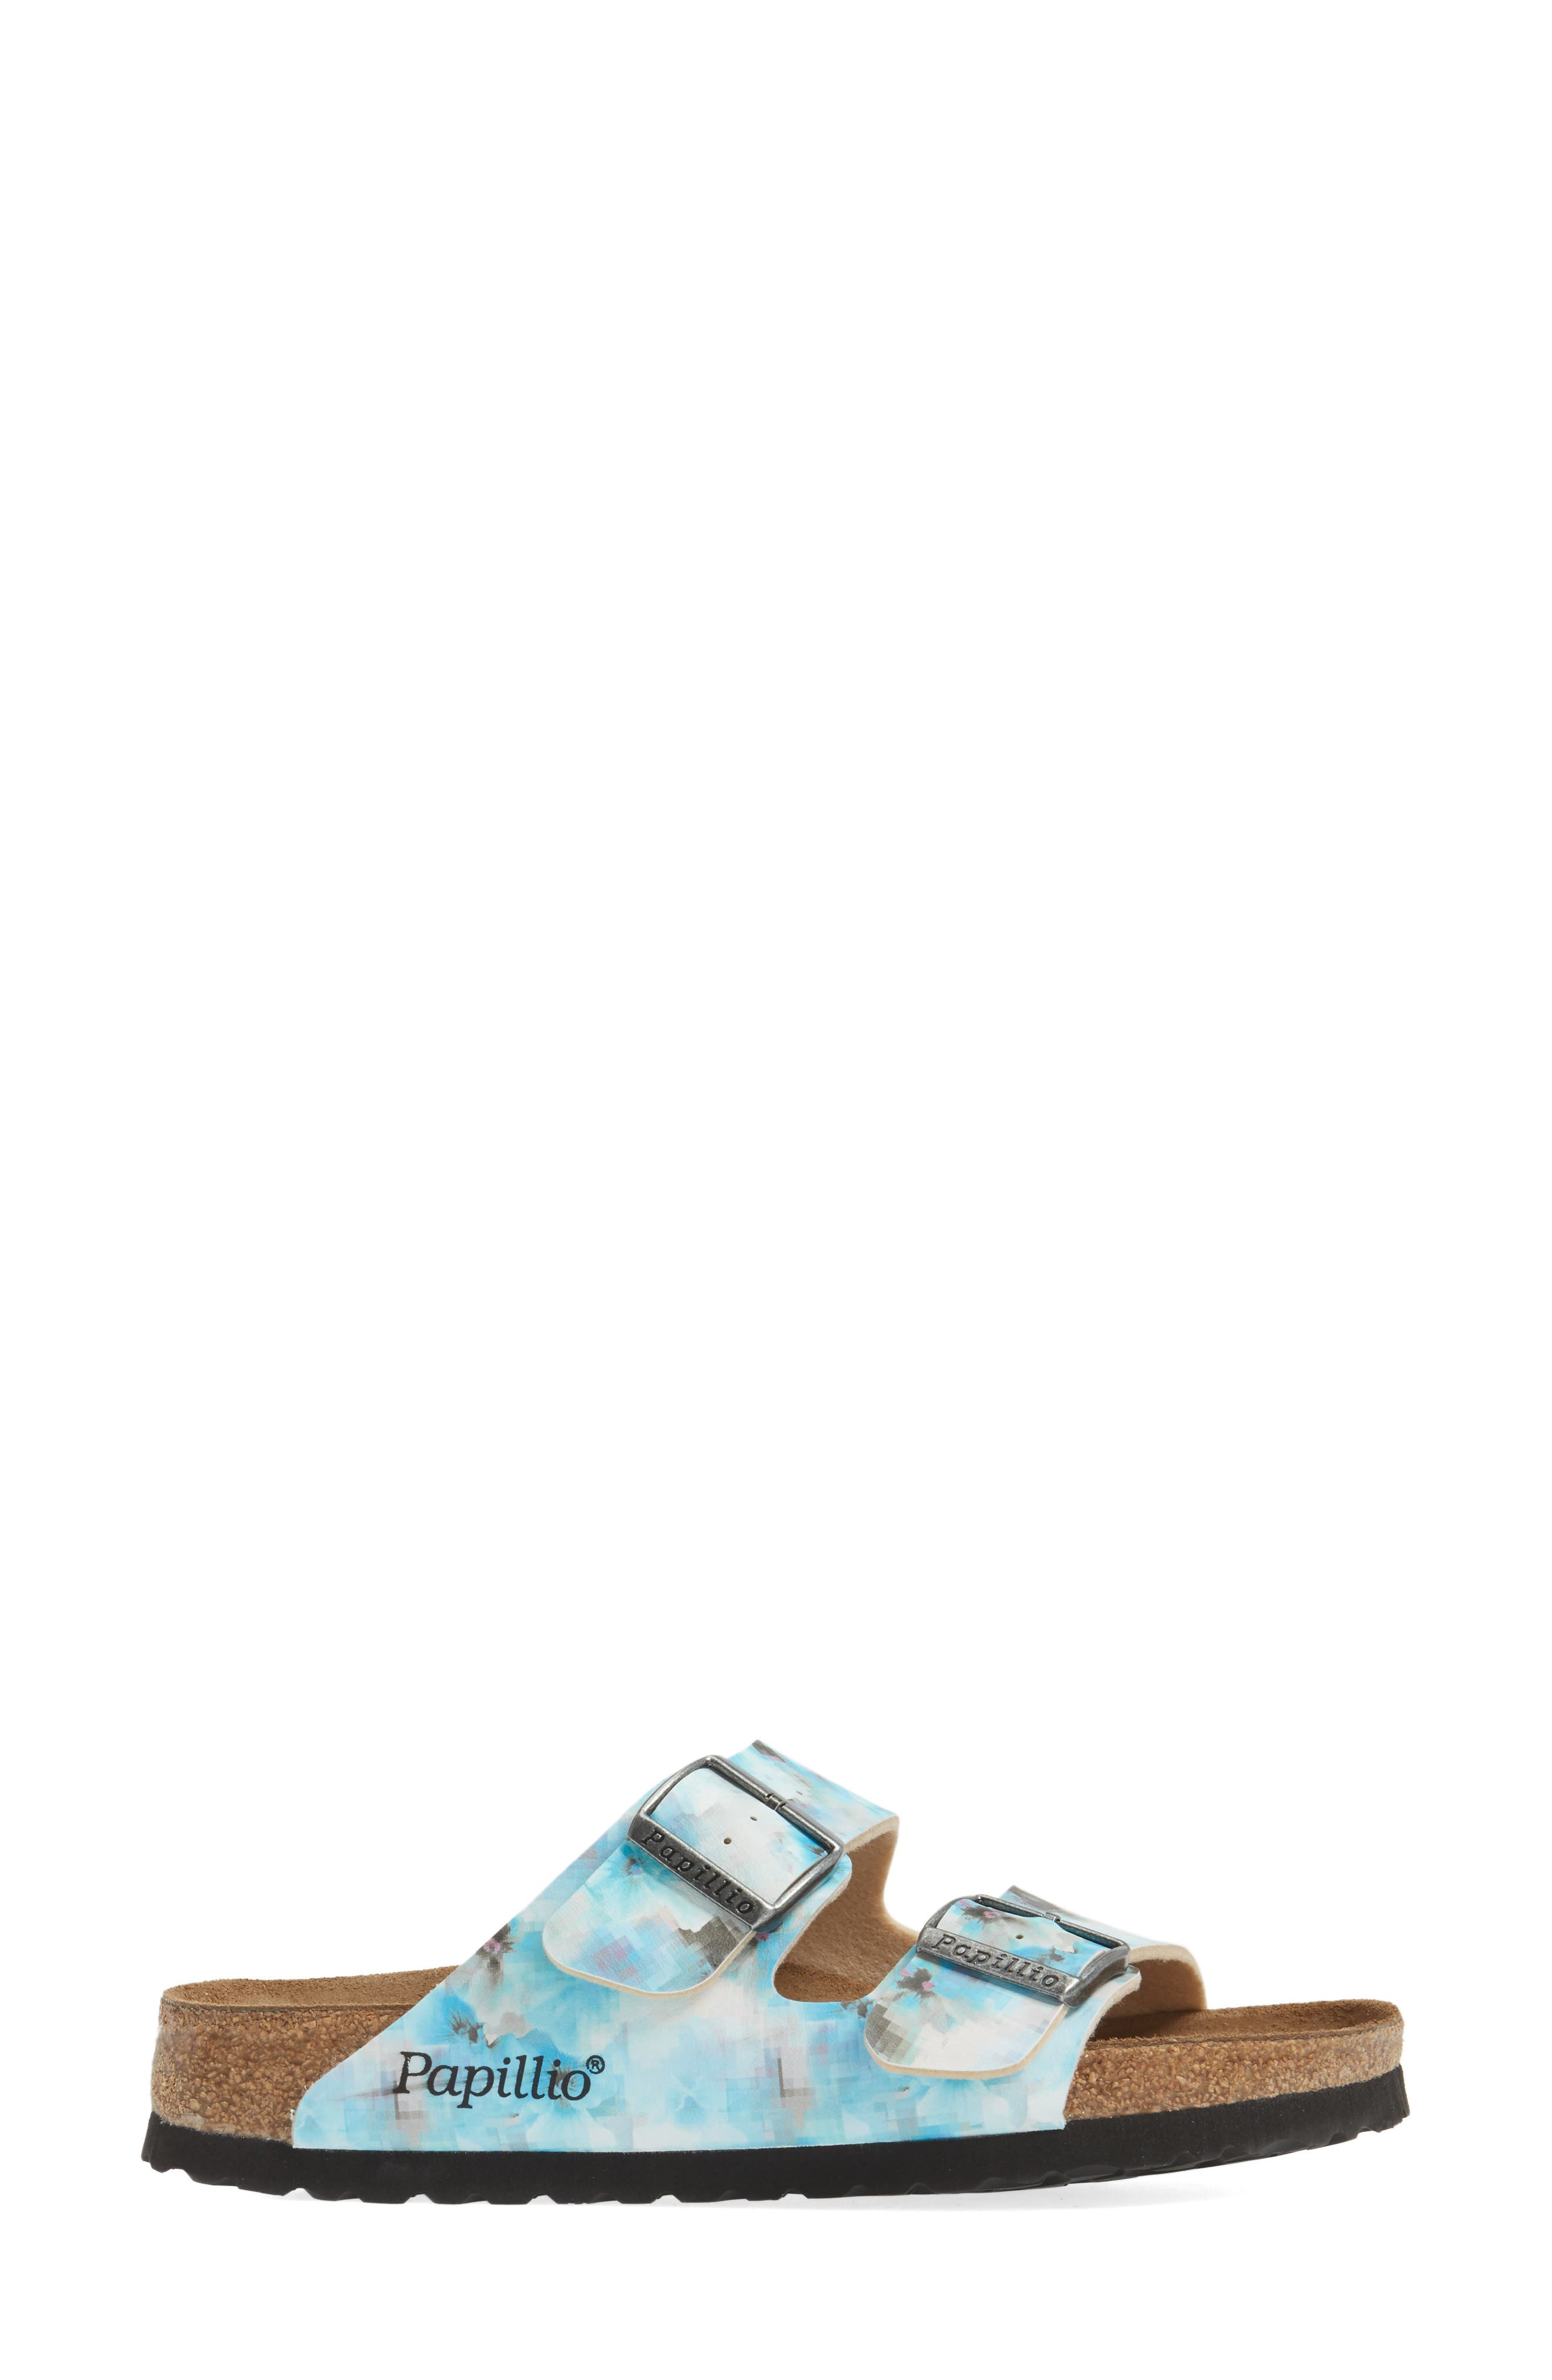 Papillio by Birkenstock 'Arizona' Birko-Flor Sandal,                             Alternate thumbnail 41, color,